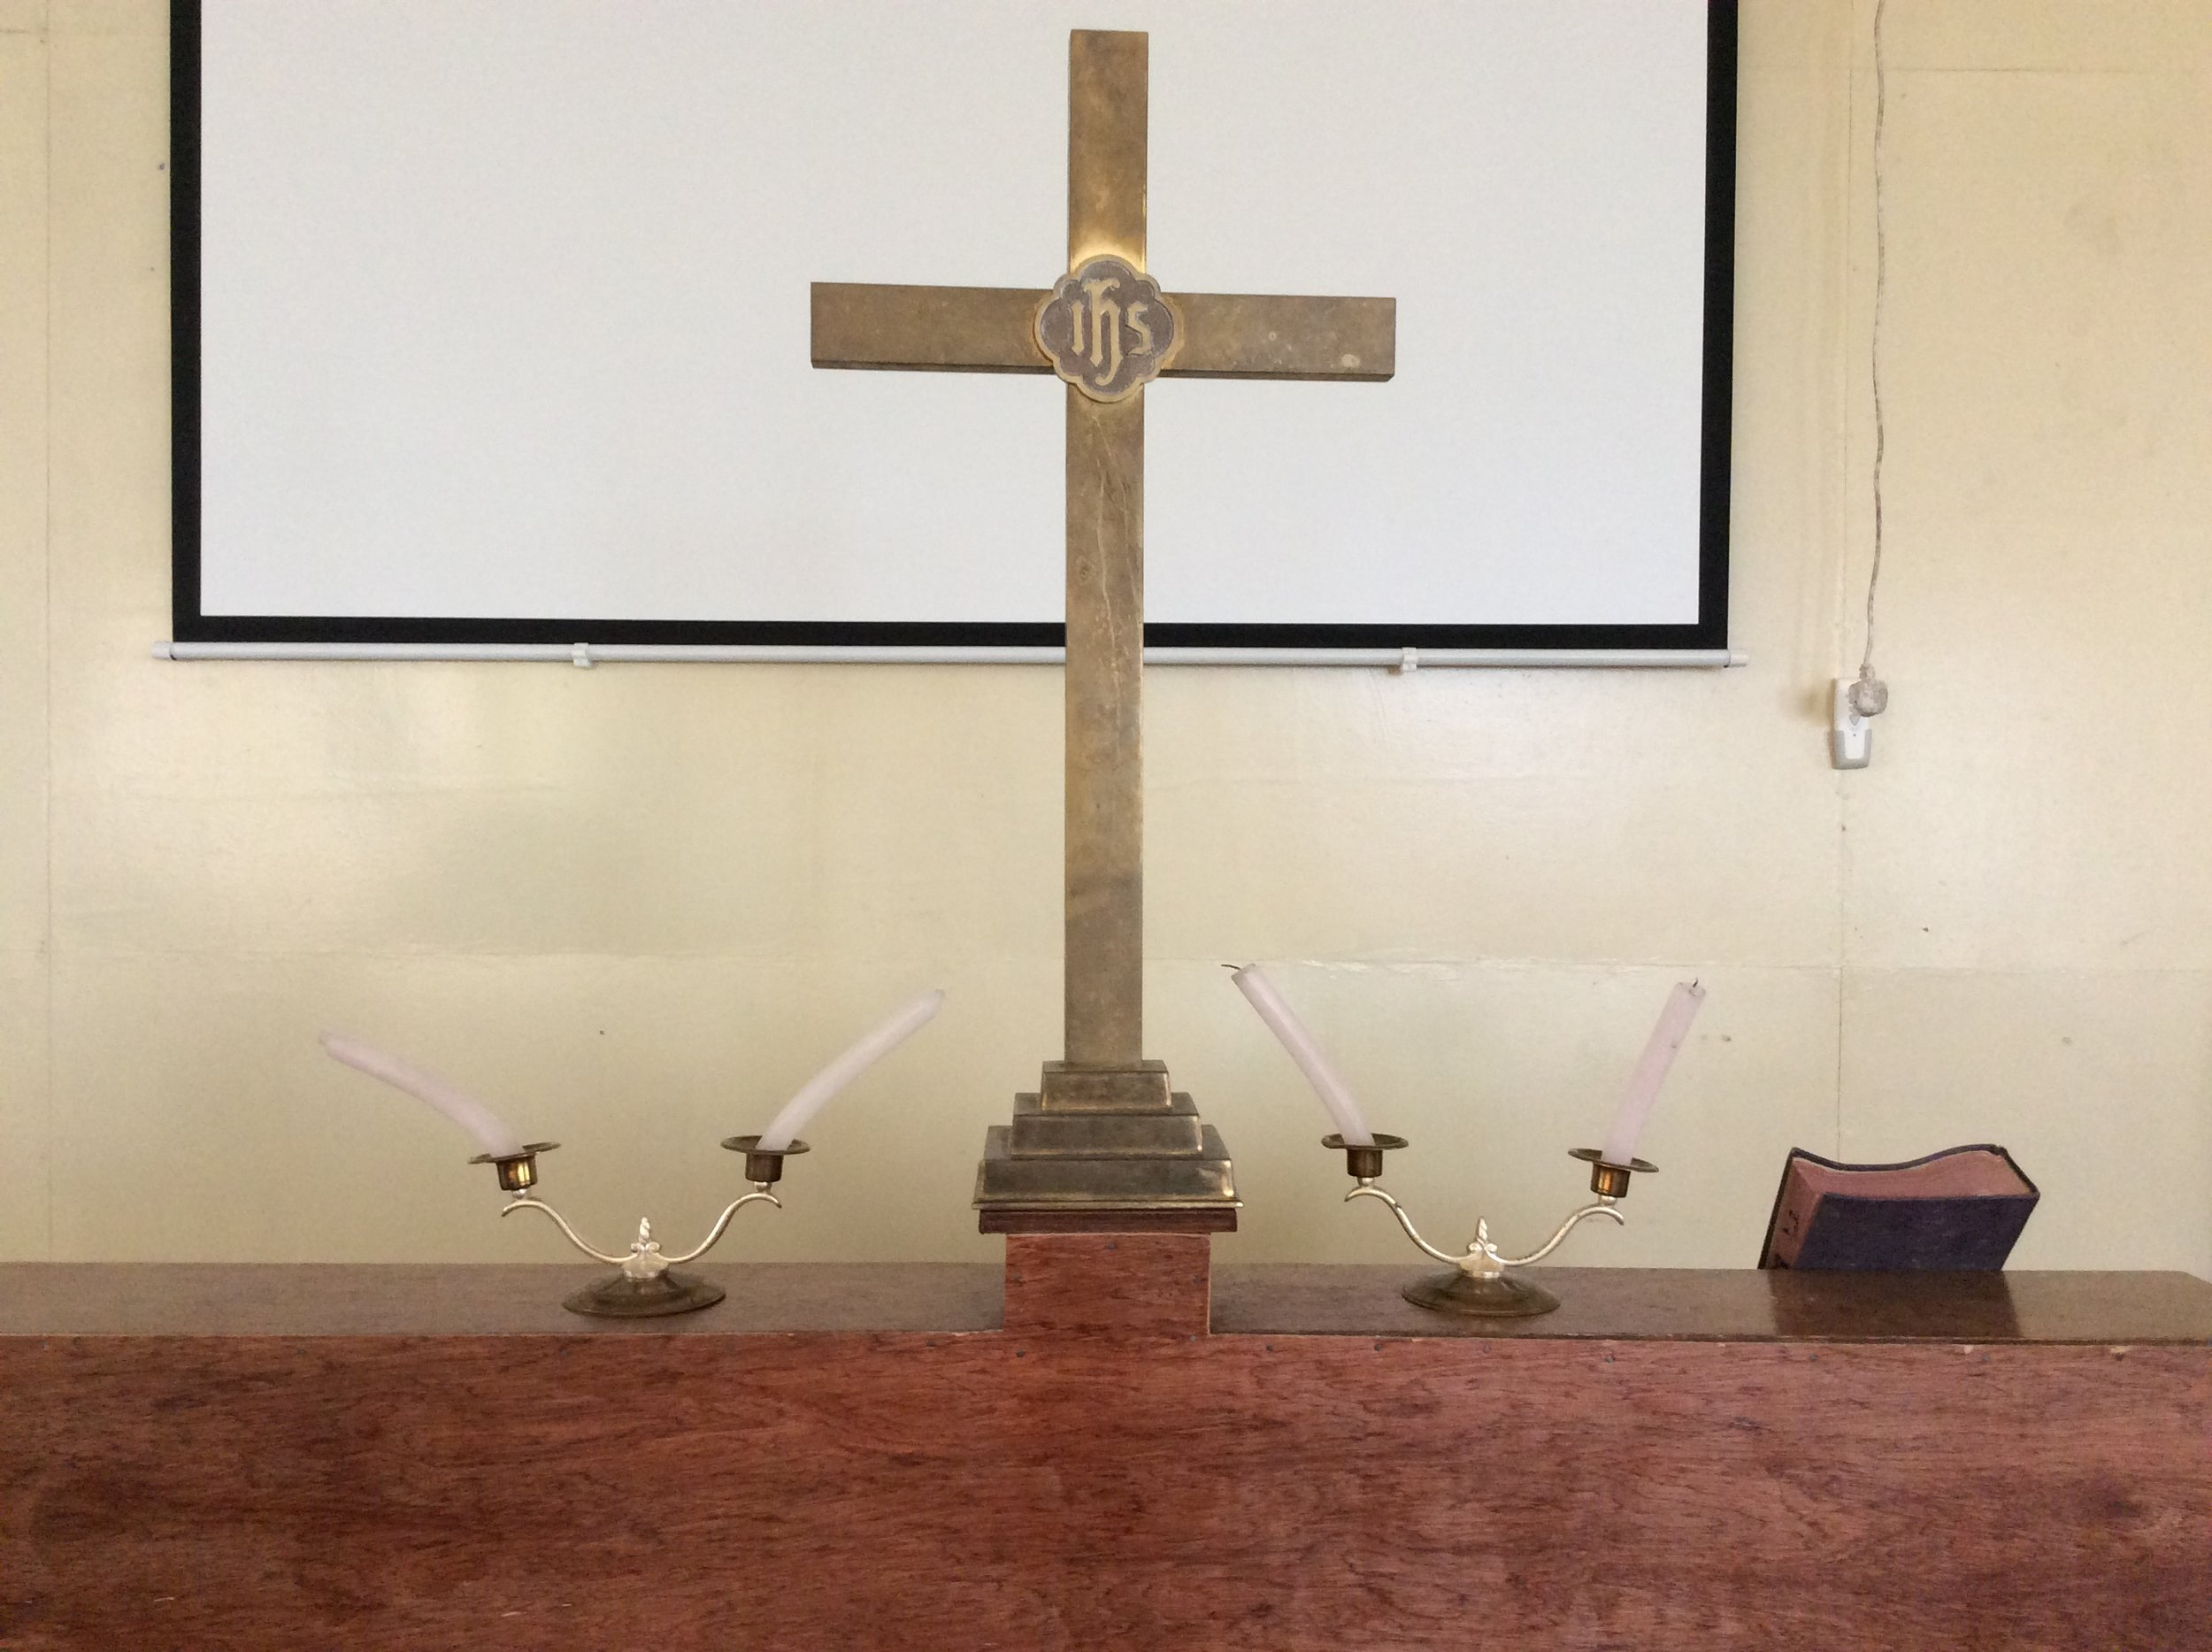 The altar at the School of Theology. We lit three candles for advent. Notice how the candles lean. Africa heat is no joke!